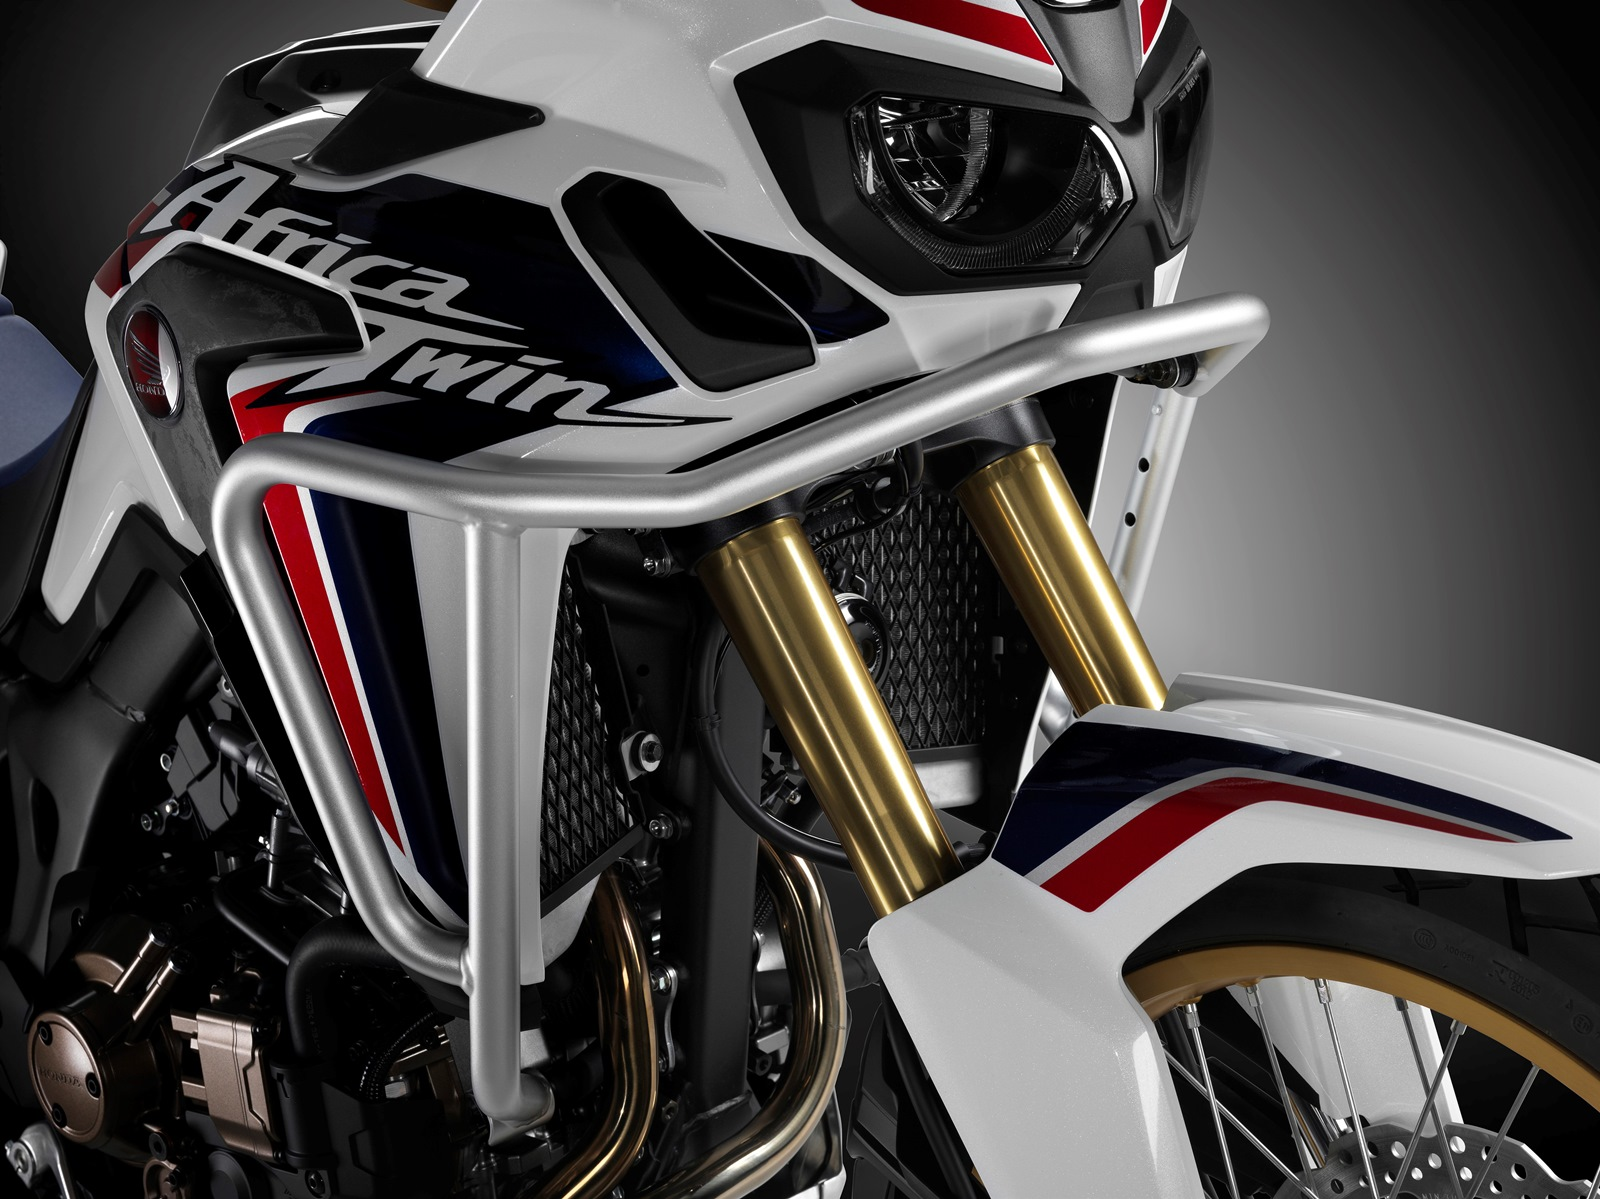 2016 Honda CRF1000L Africa Twin crash guard